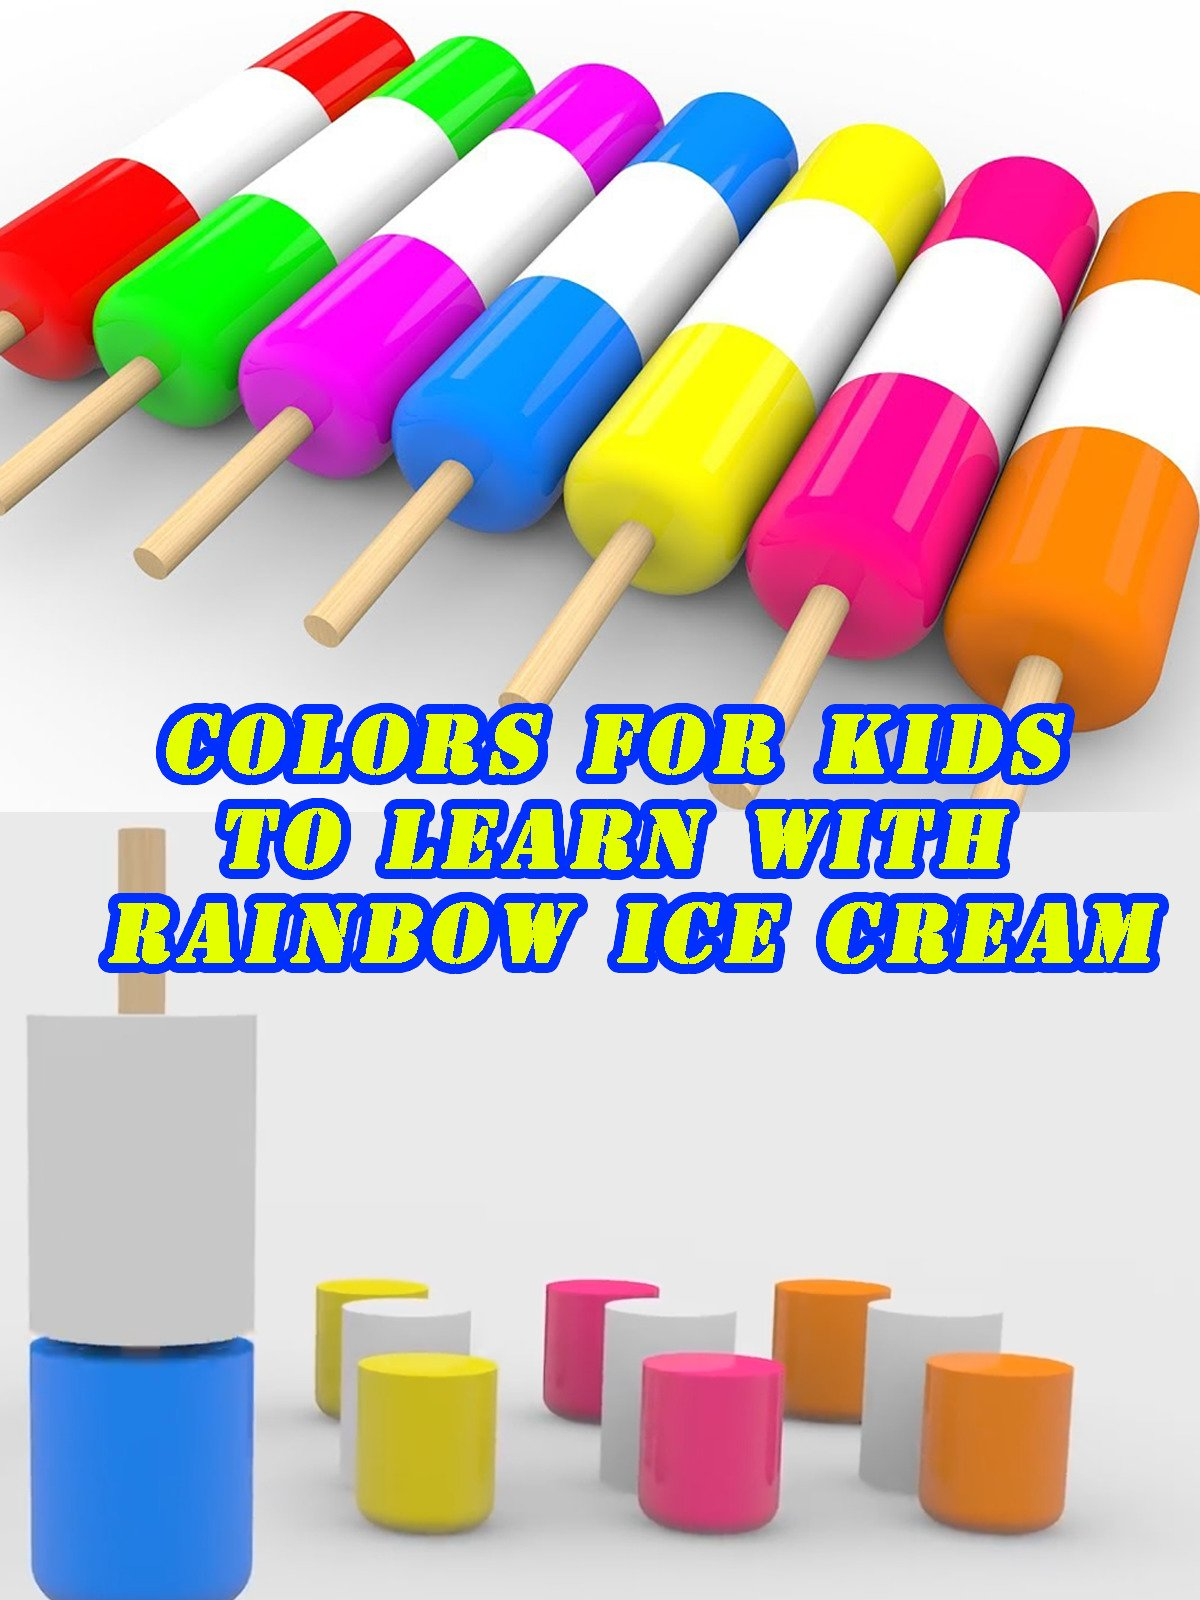 Colors for Kids to Learn with Rainbow Ice Cream